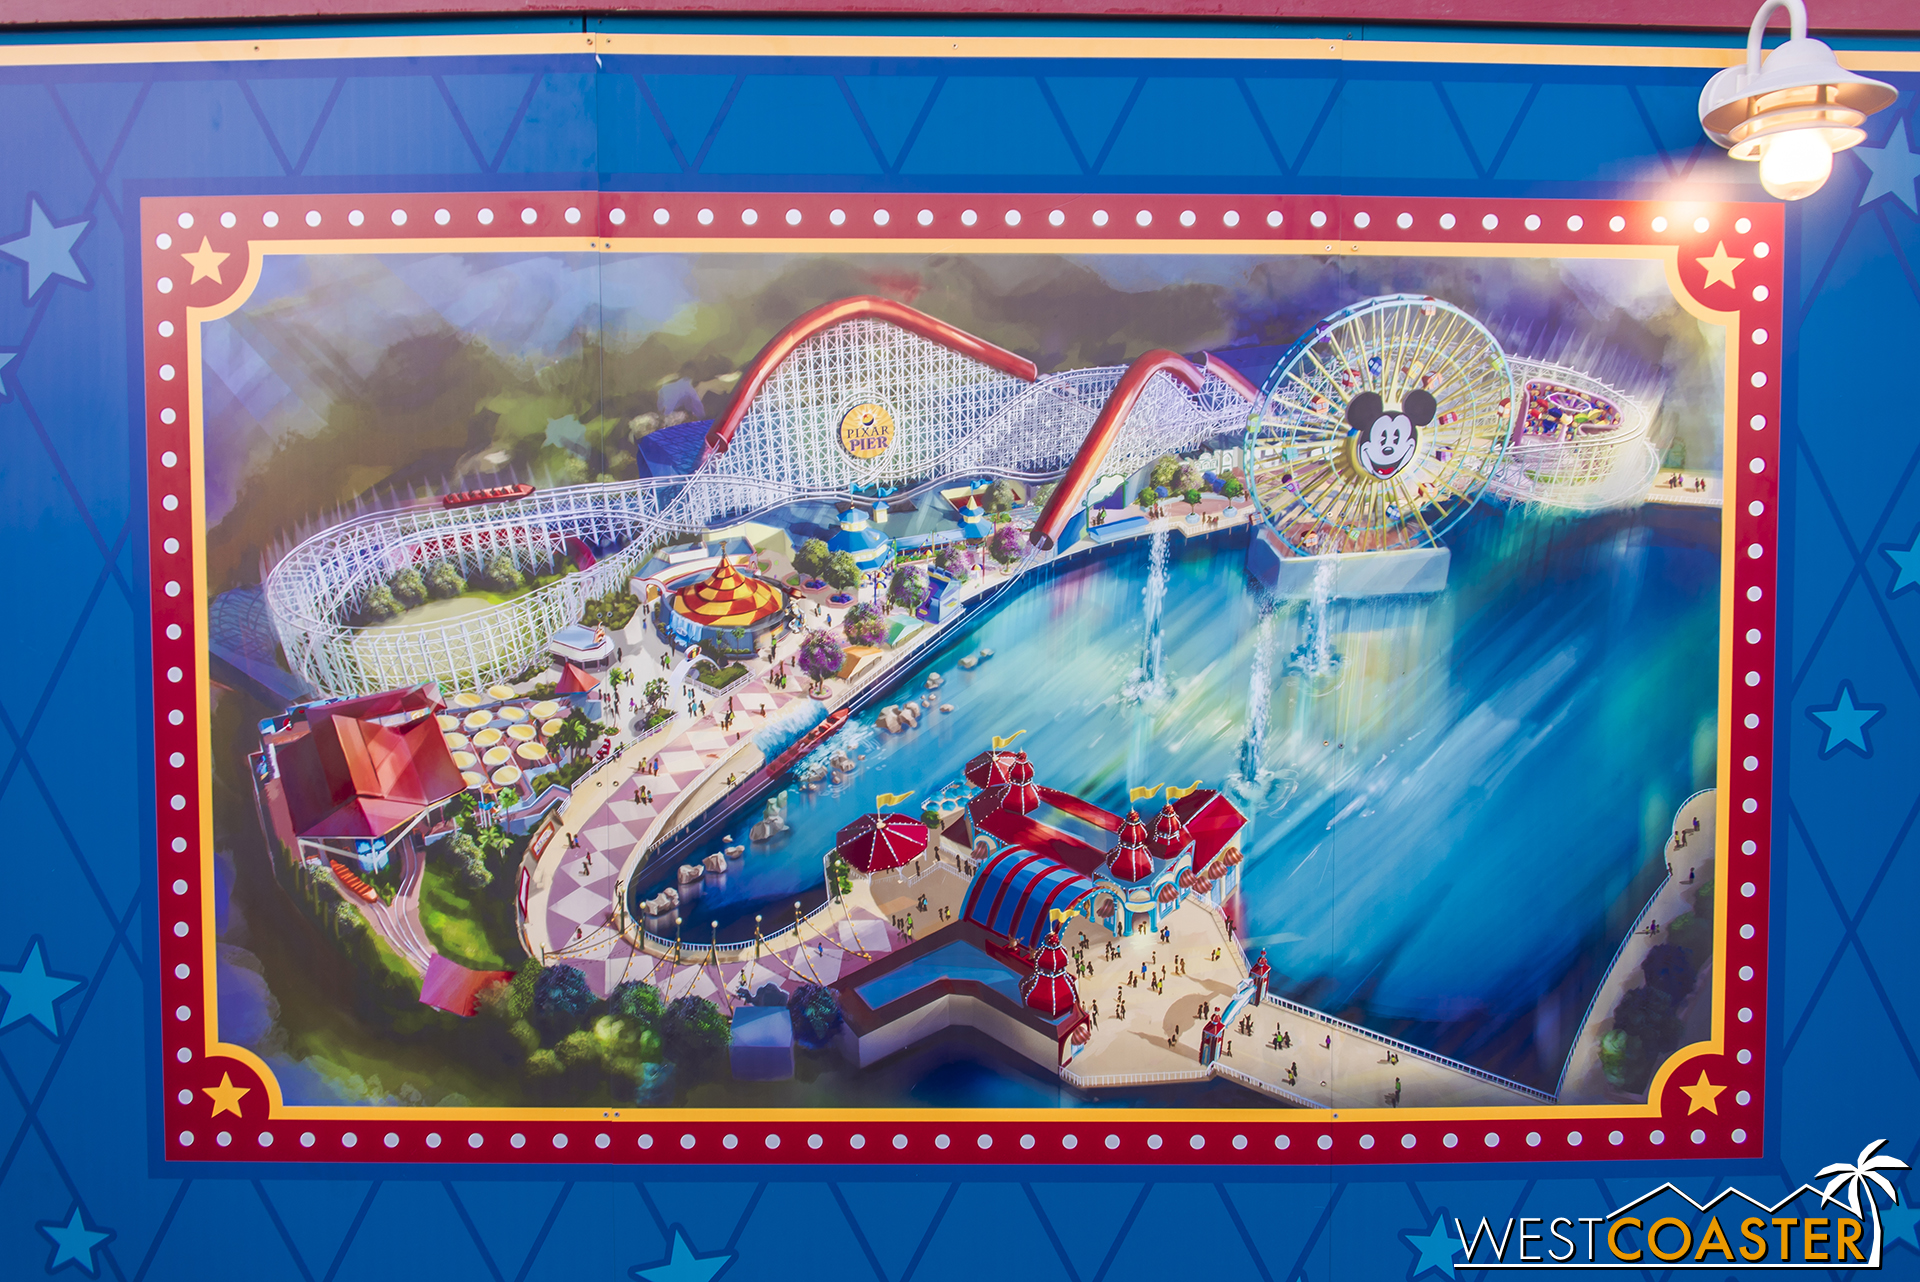 Paradise Pier is transforming, and they've posted concept art all along the work walls to give guests an idea of what's coming.